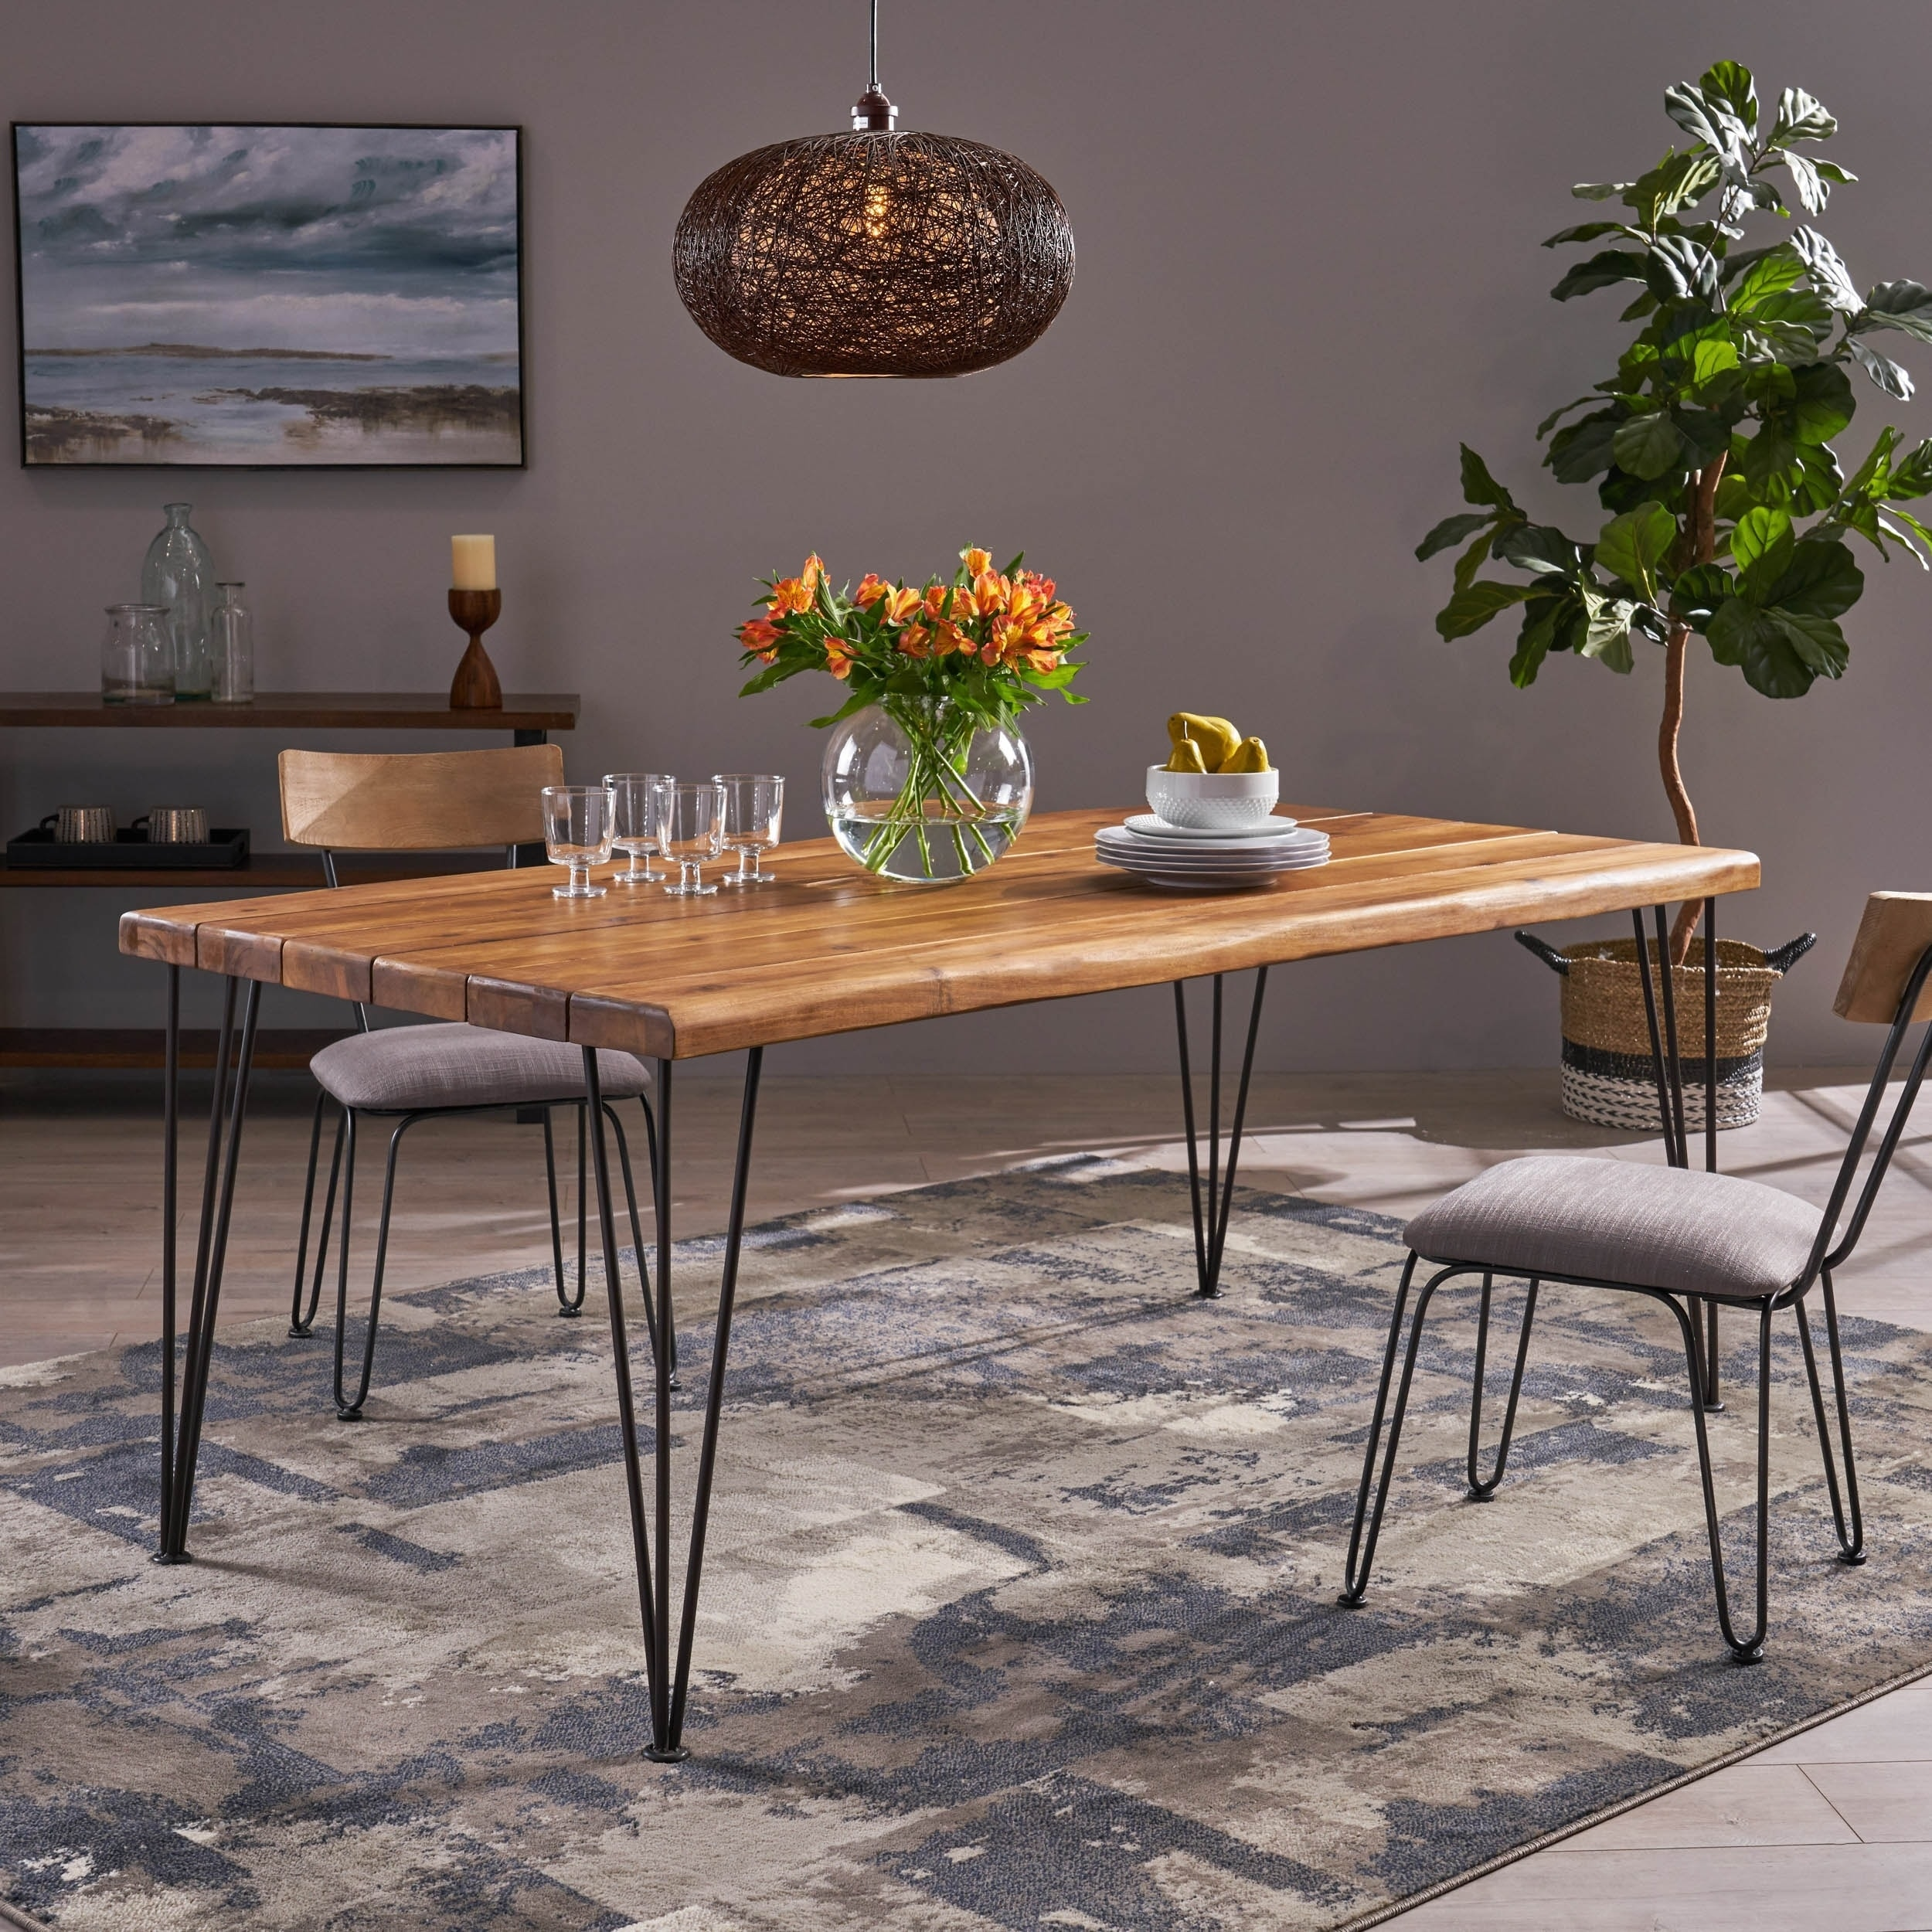 Zion outdoor 72 rectangular acacia wood dining table with iron hairpin legs by christopher knight home